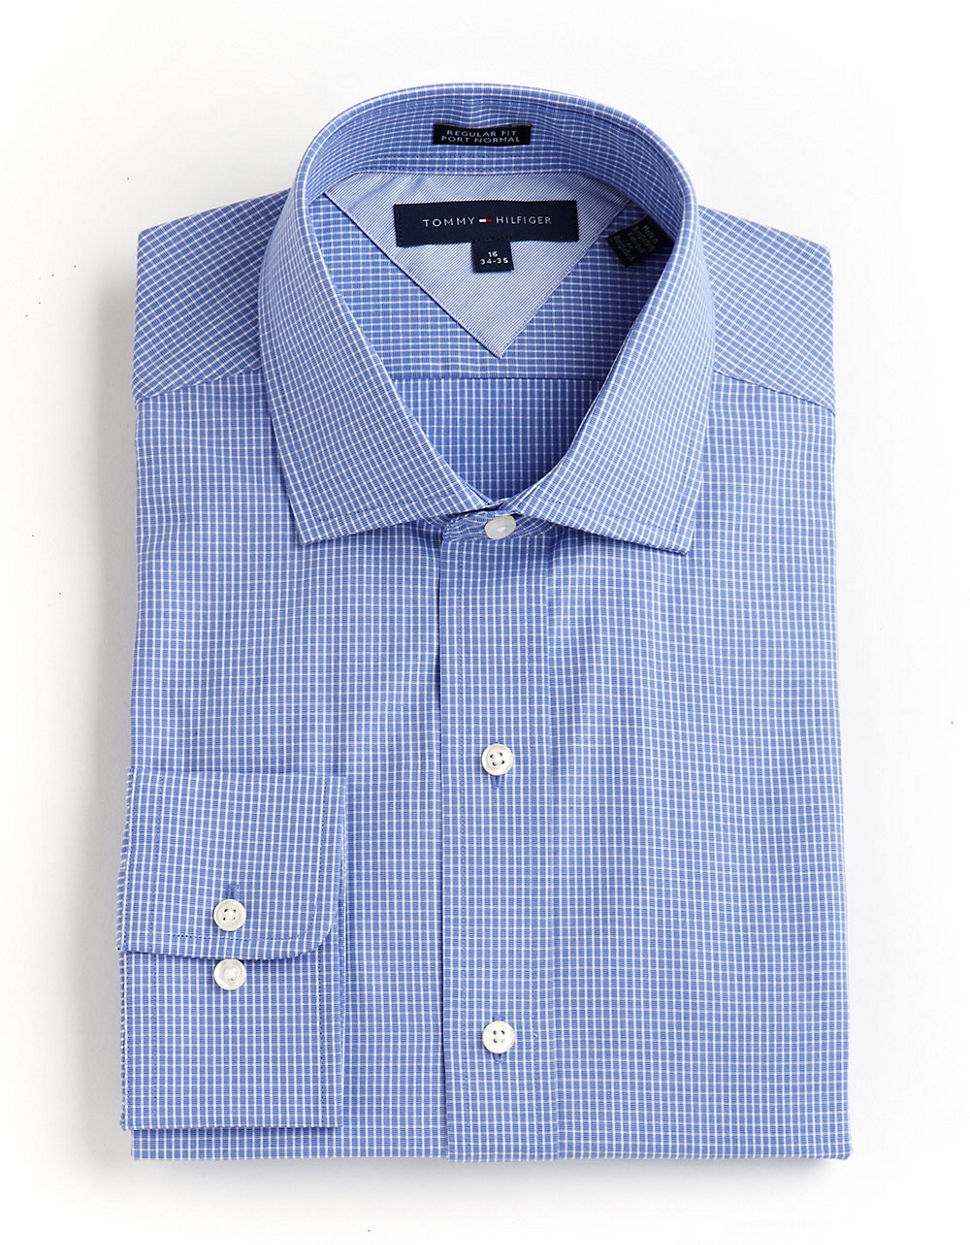 Tommy hilfiger Tommy Hilfiger Ls Regular Fit Dress Shirt blue 16  32/33